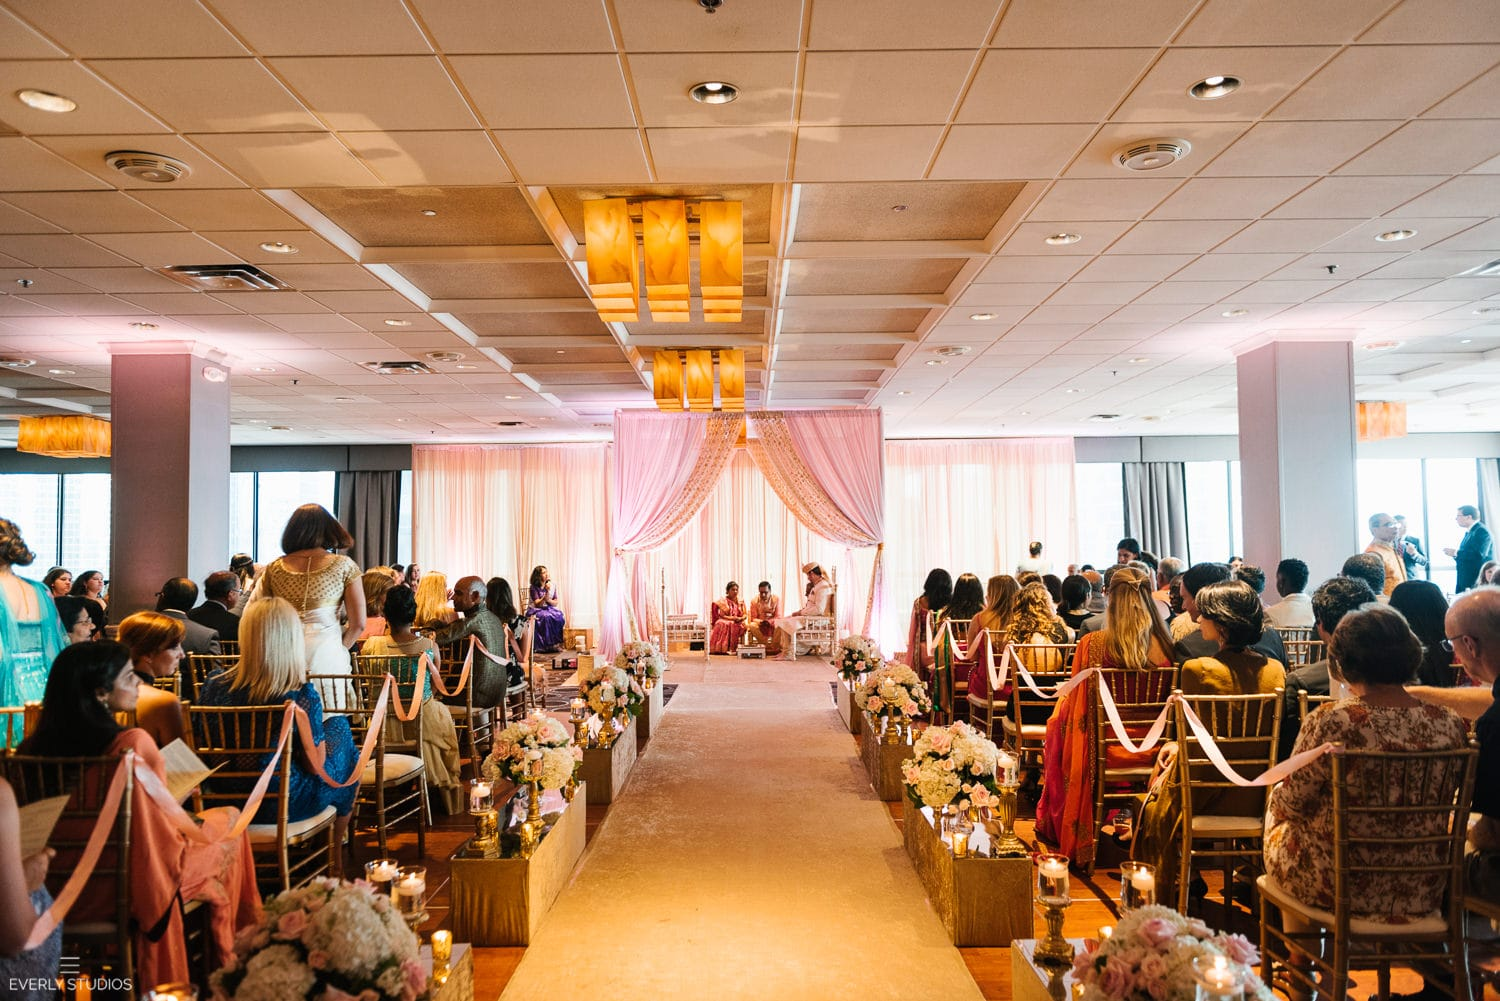 Holiday Inn Chicago Mart Plaza River North wedding. Photography by Indian wedding photographer NYC Everly Studios, www.everlystudios.com